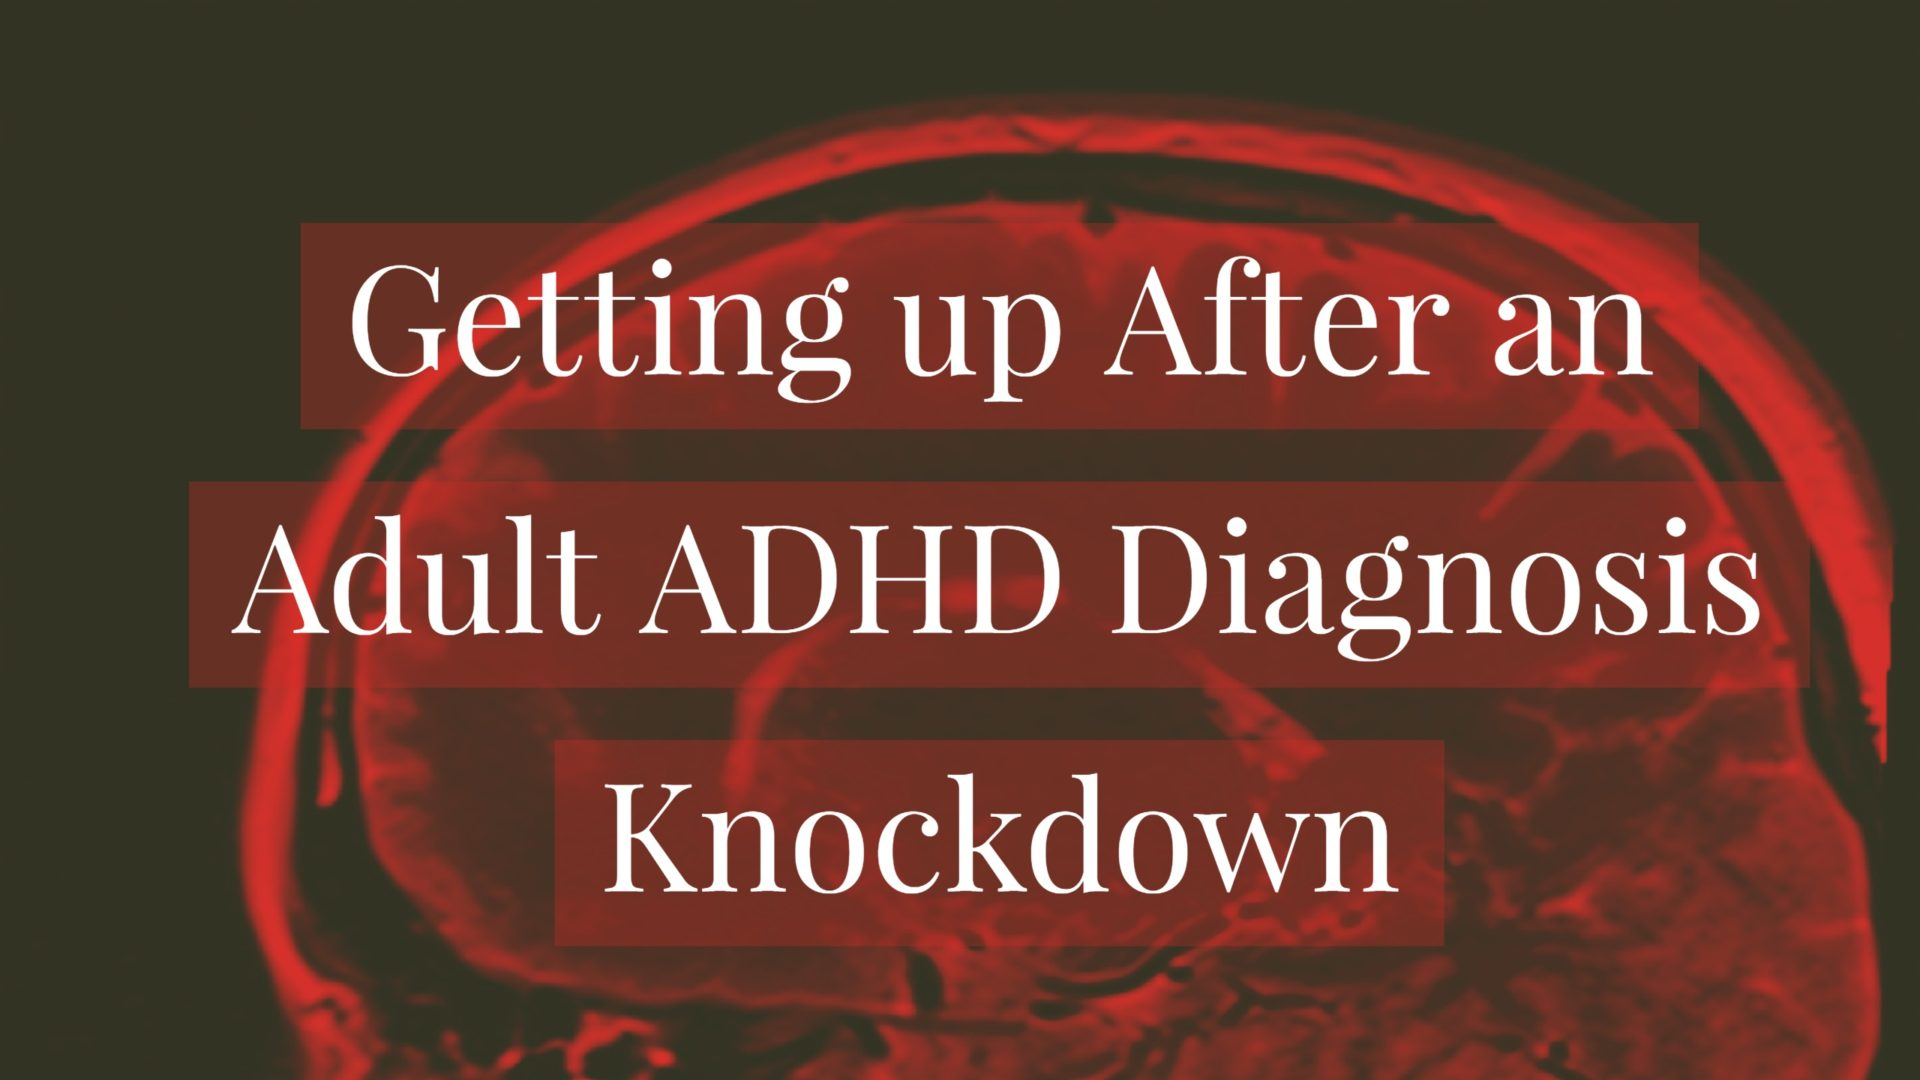 Getting up After an Adult ADHD Diagnosis Knockdown